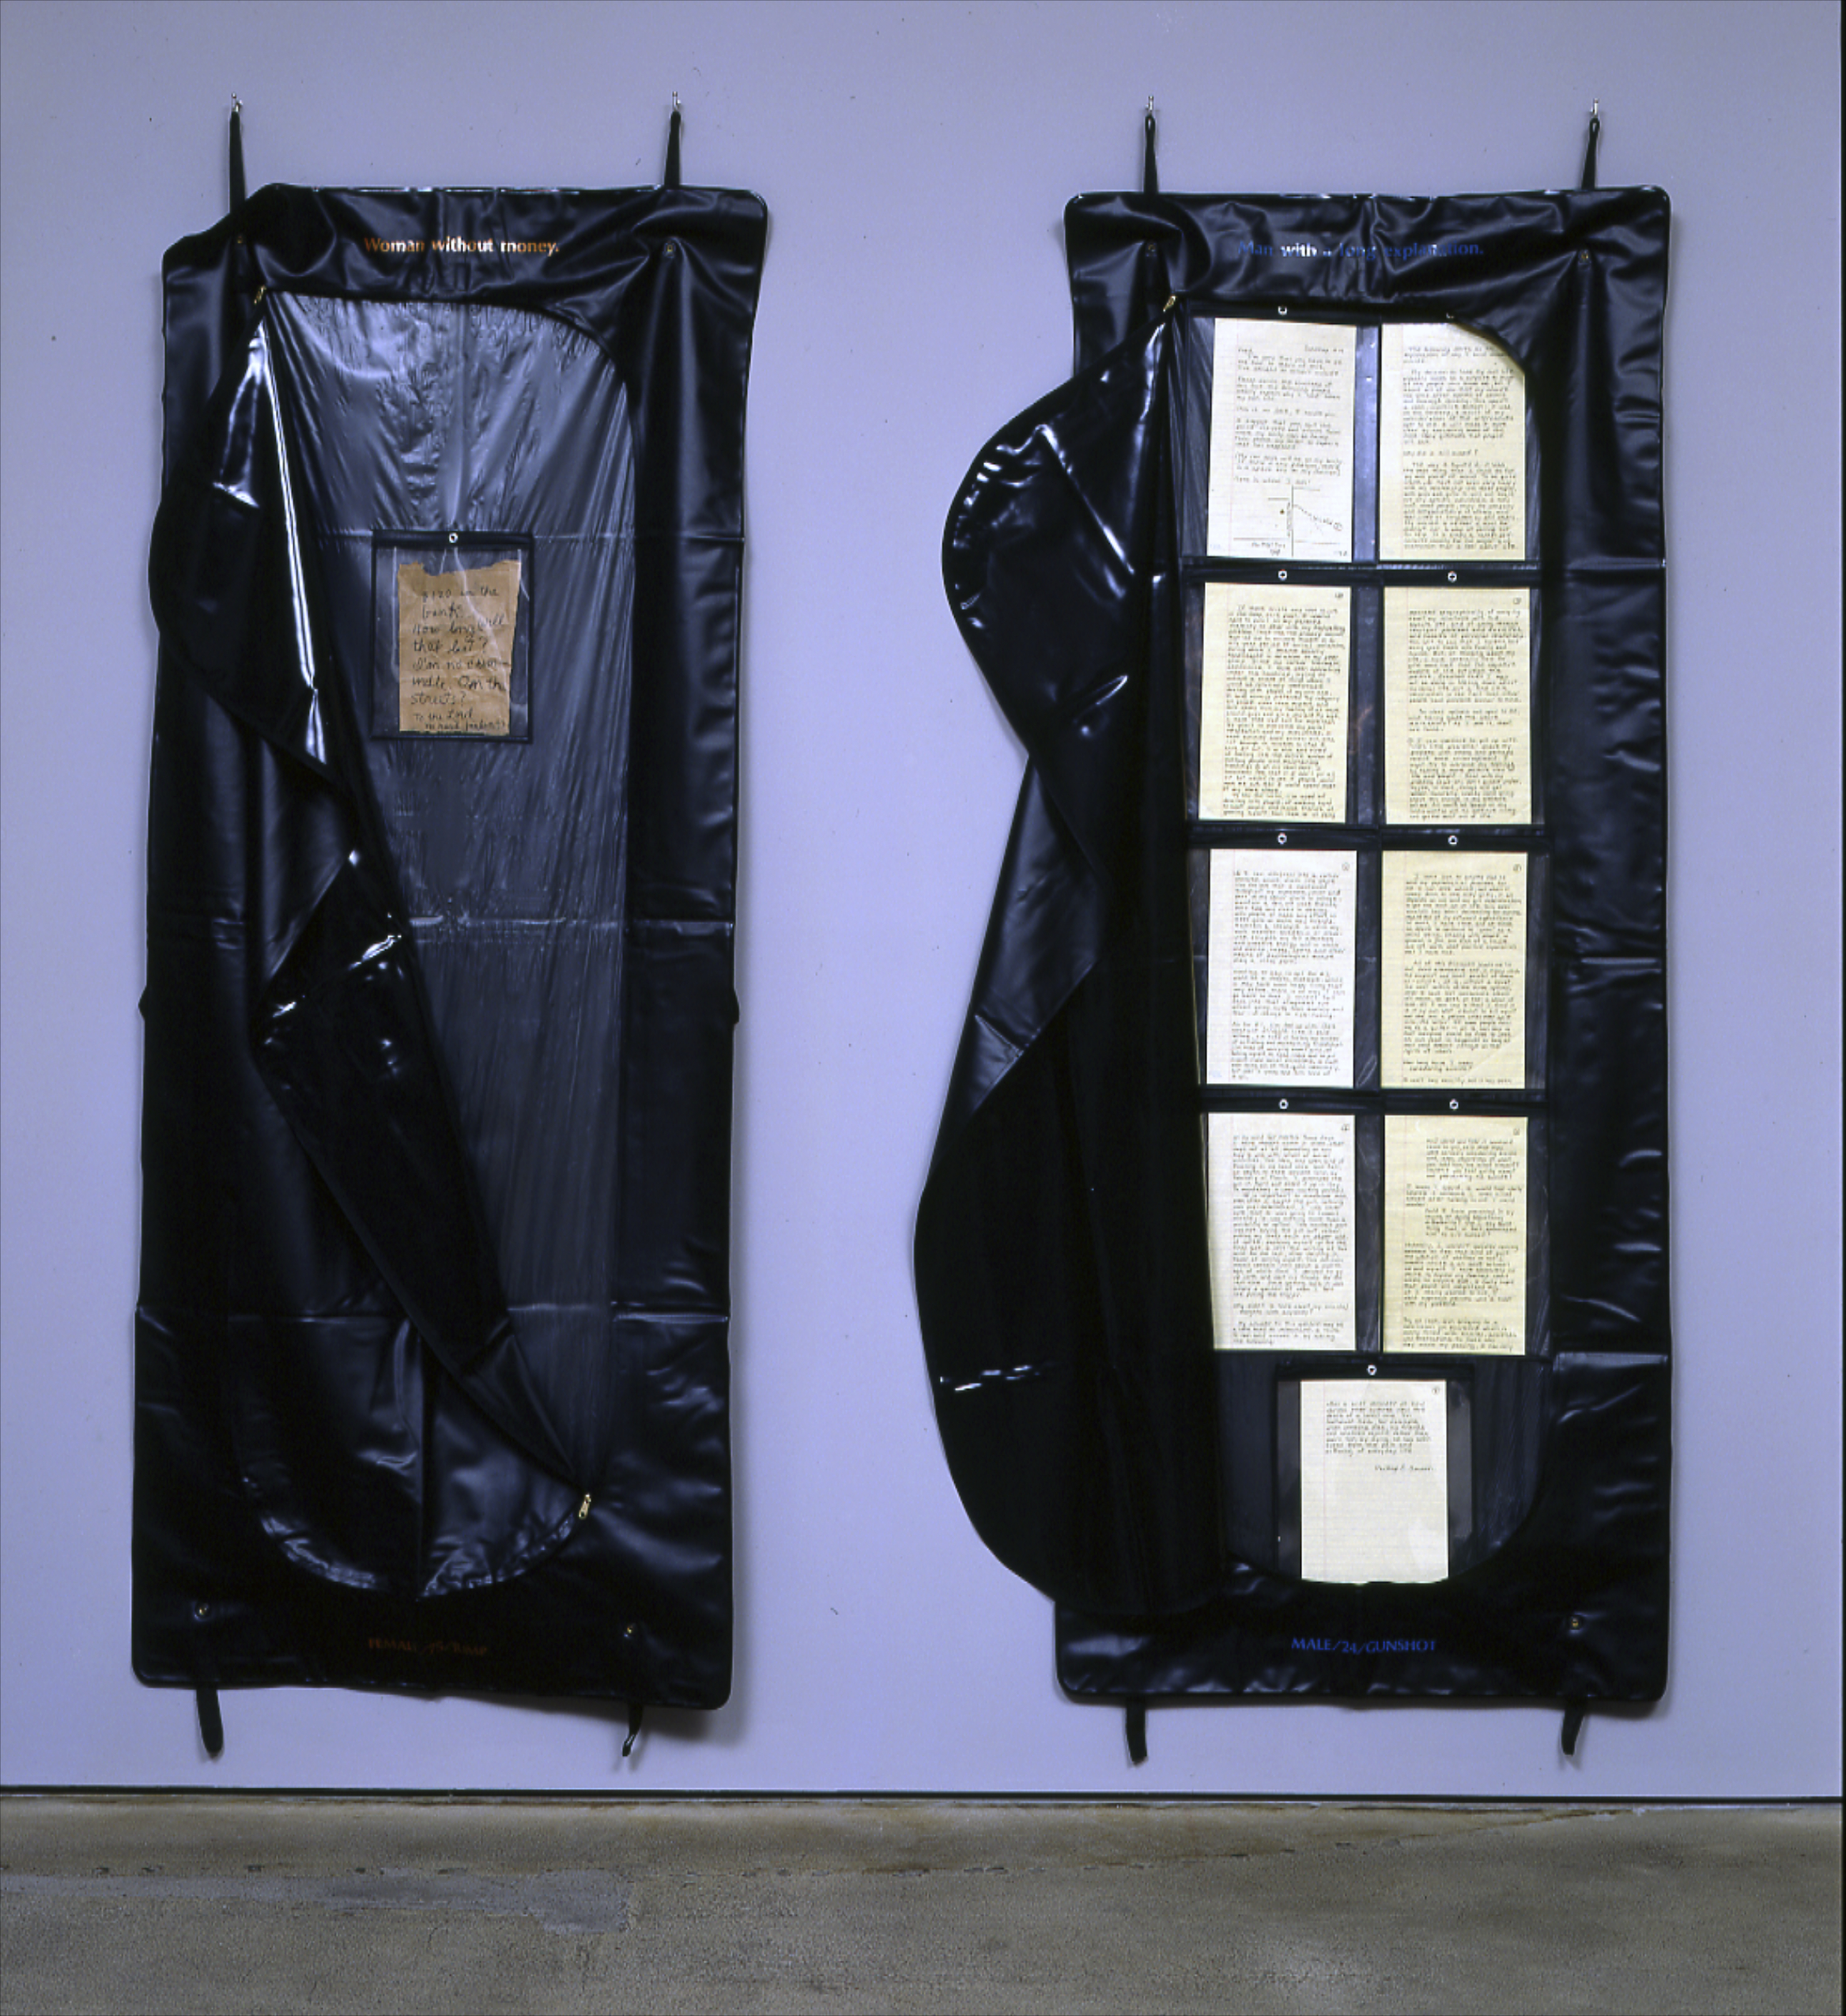 Suicide Notes installation 1993, detail